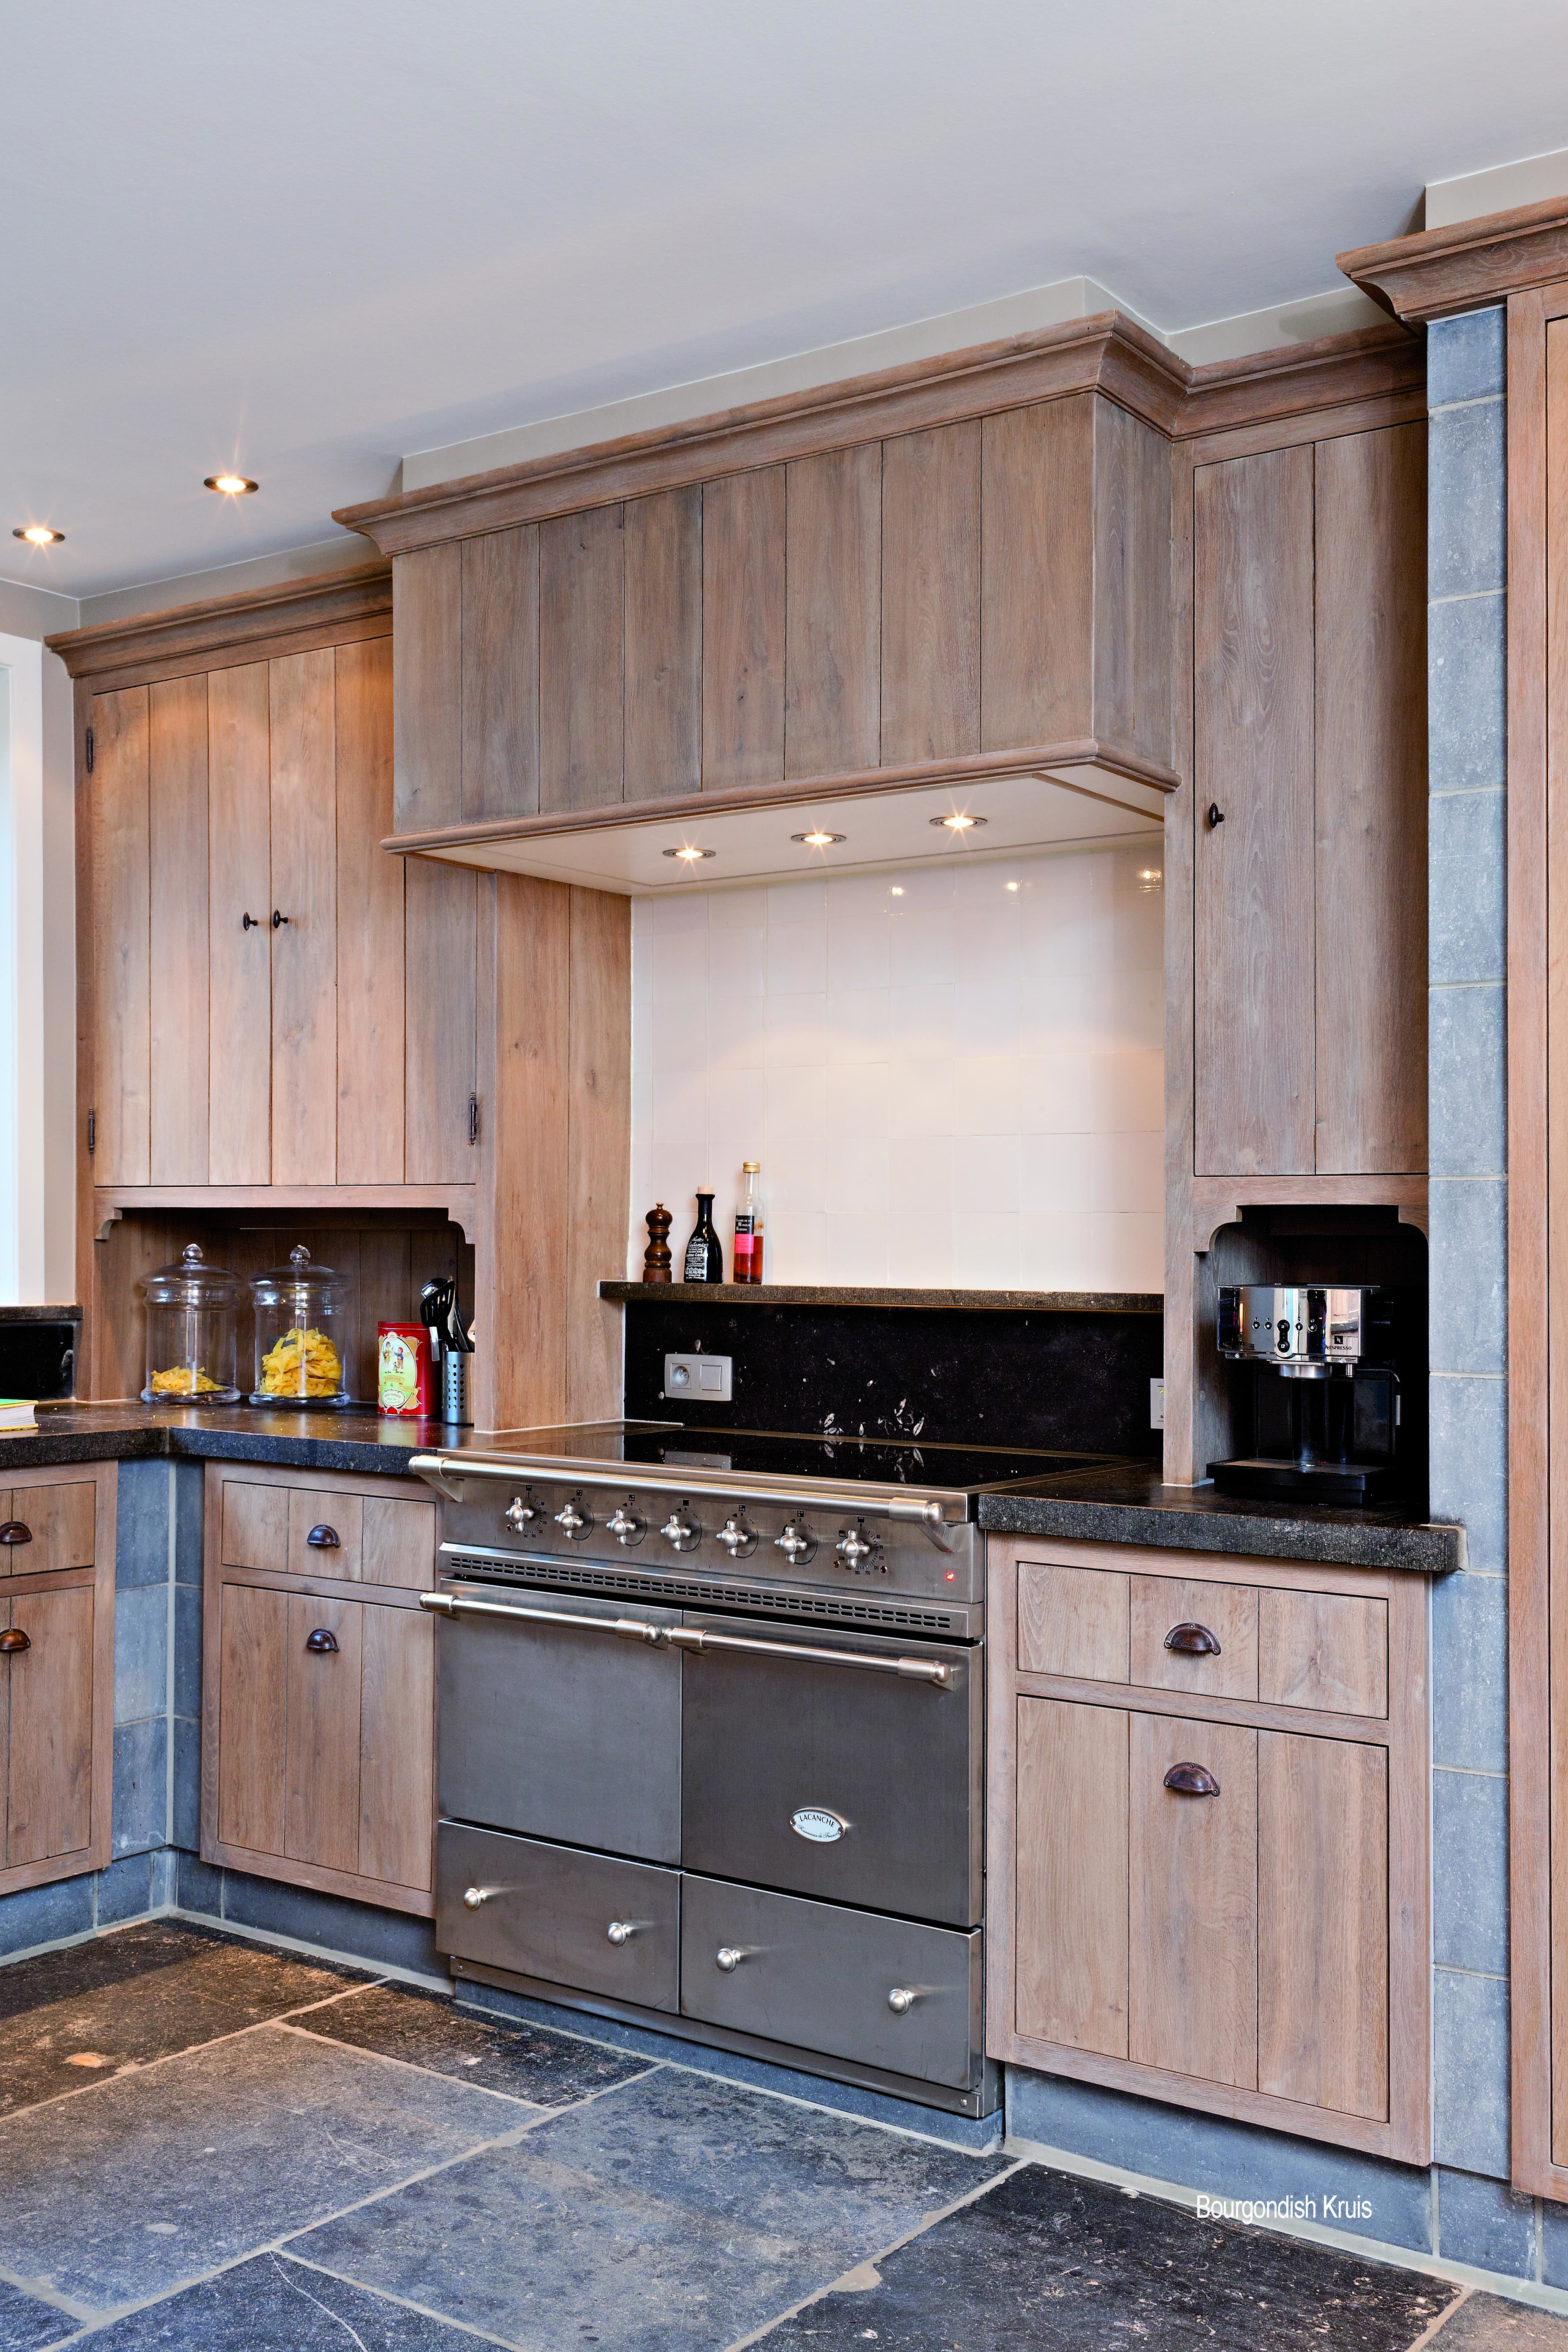 Lacanche Cluny In Stainless Steel With Stainless Steel Trim Kitchen Pantry Design Pantry Design Kitchen